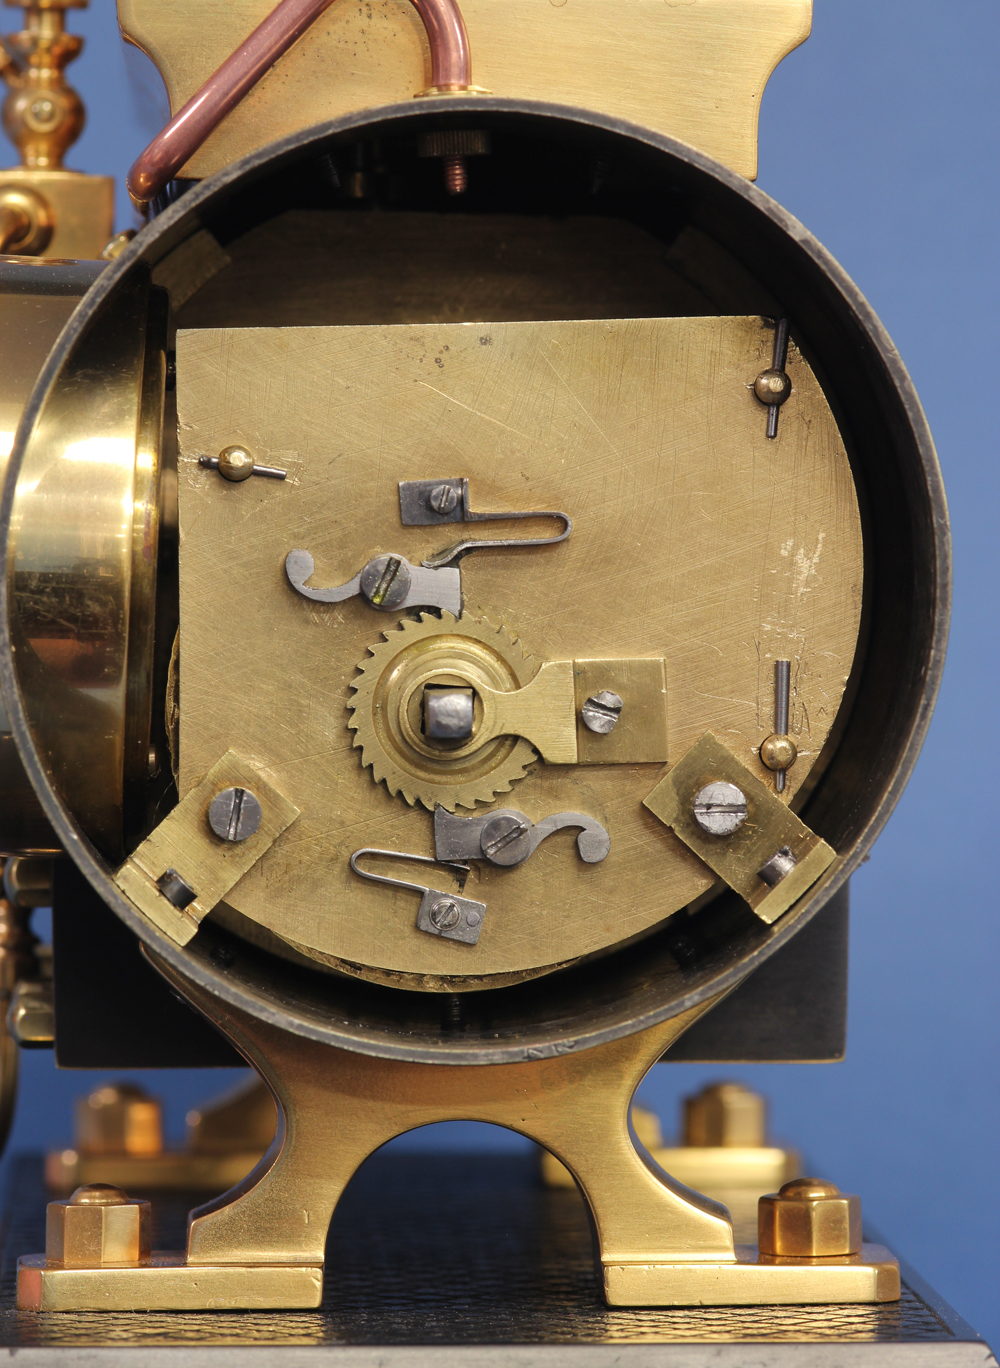 Horizontal Industrial Boiler Clock.